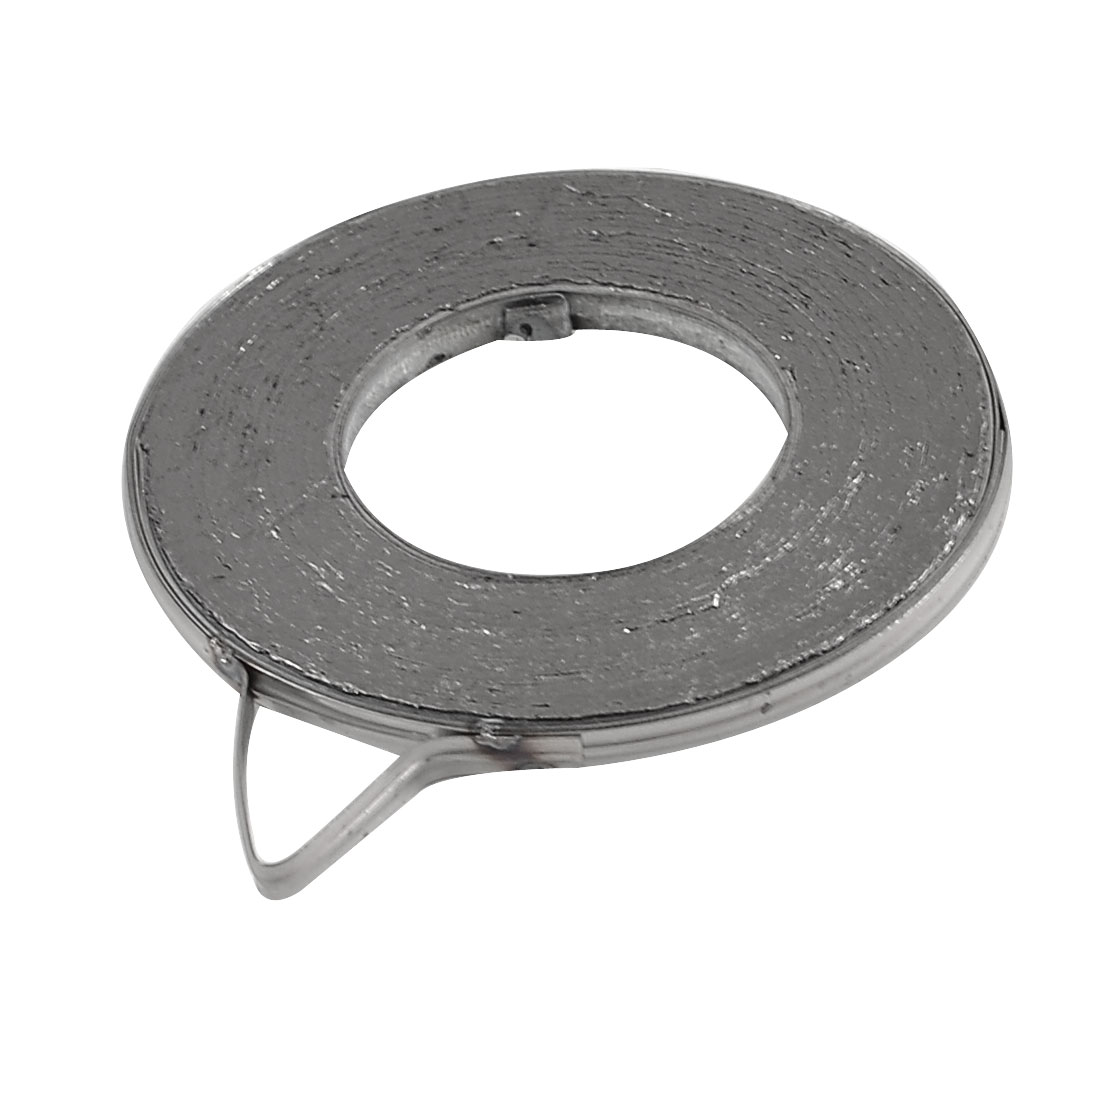 Heat Exchanger Spiral Wound Sealing Metal Gasket 65mm x 32mm x 4mm